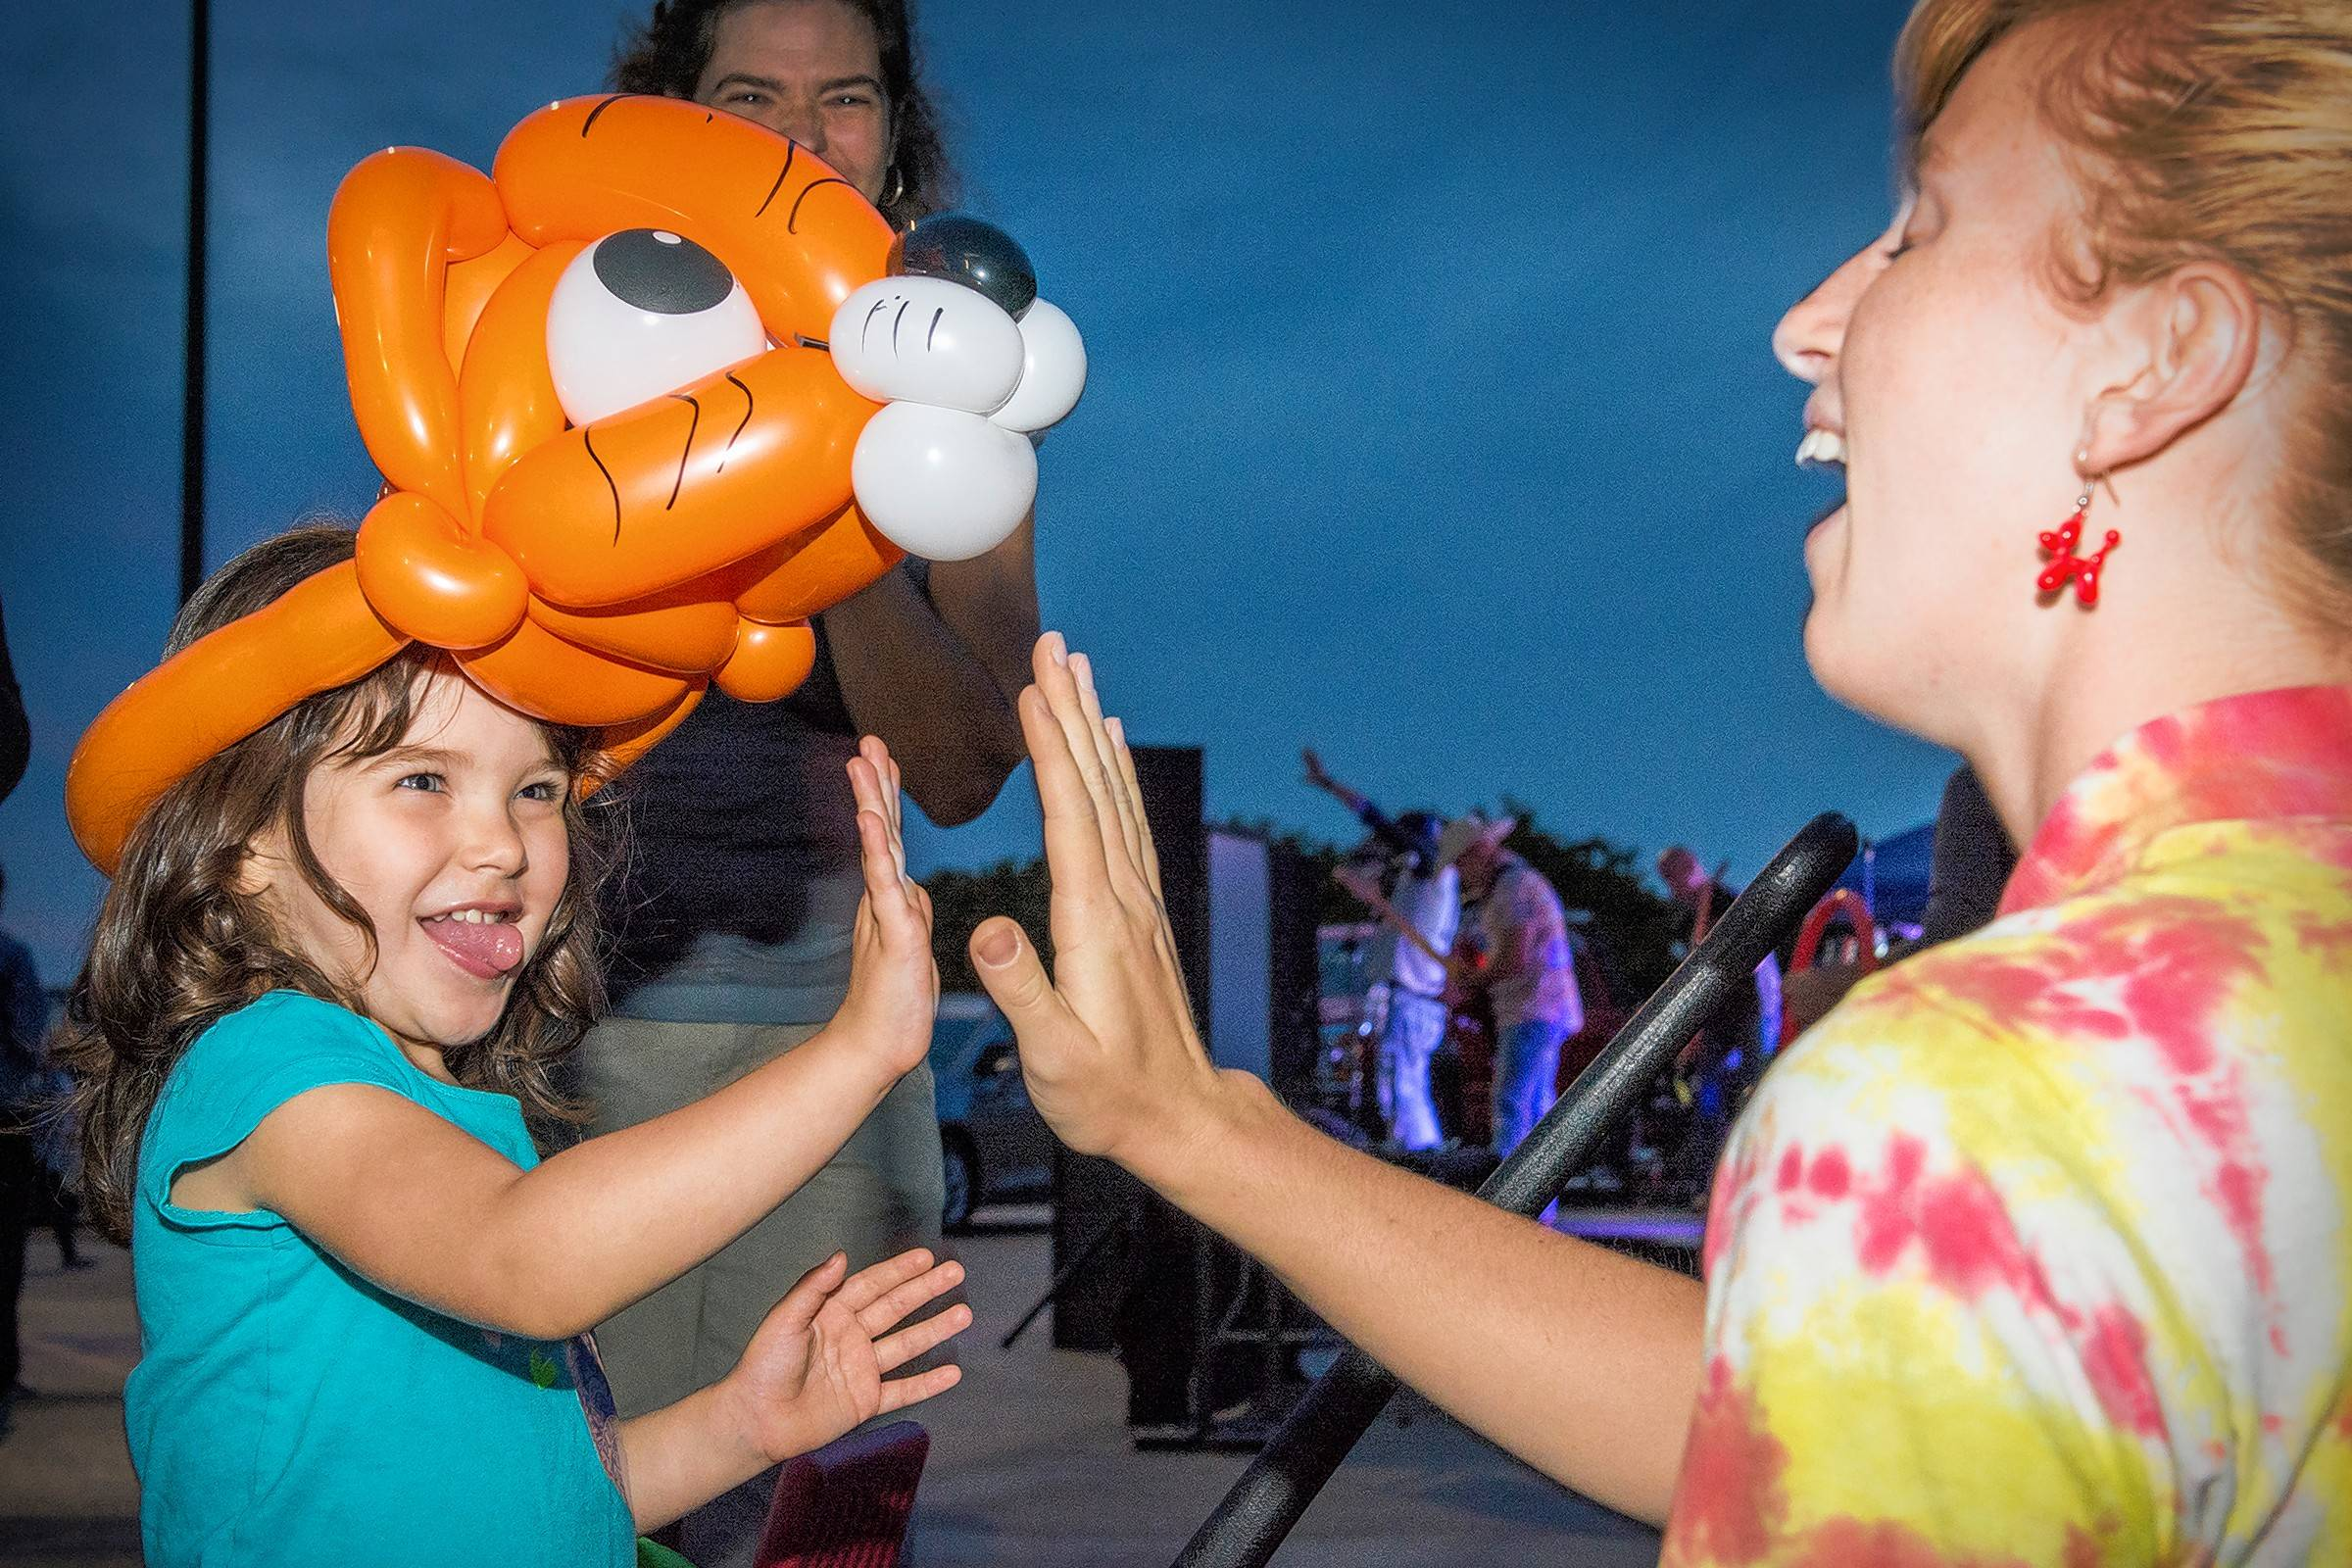 Annie McMillan, 3, of Hanover Park seems to approve of her tiger made by balloon artist Anna Freeman.